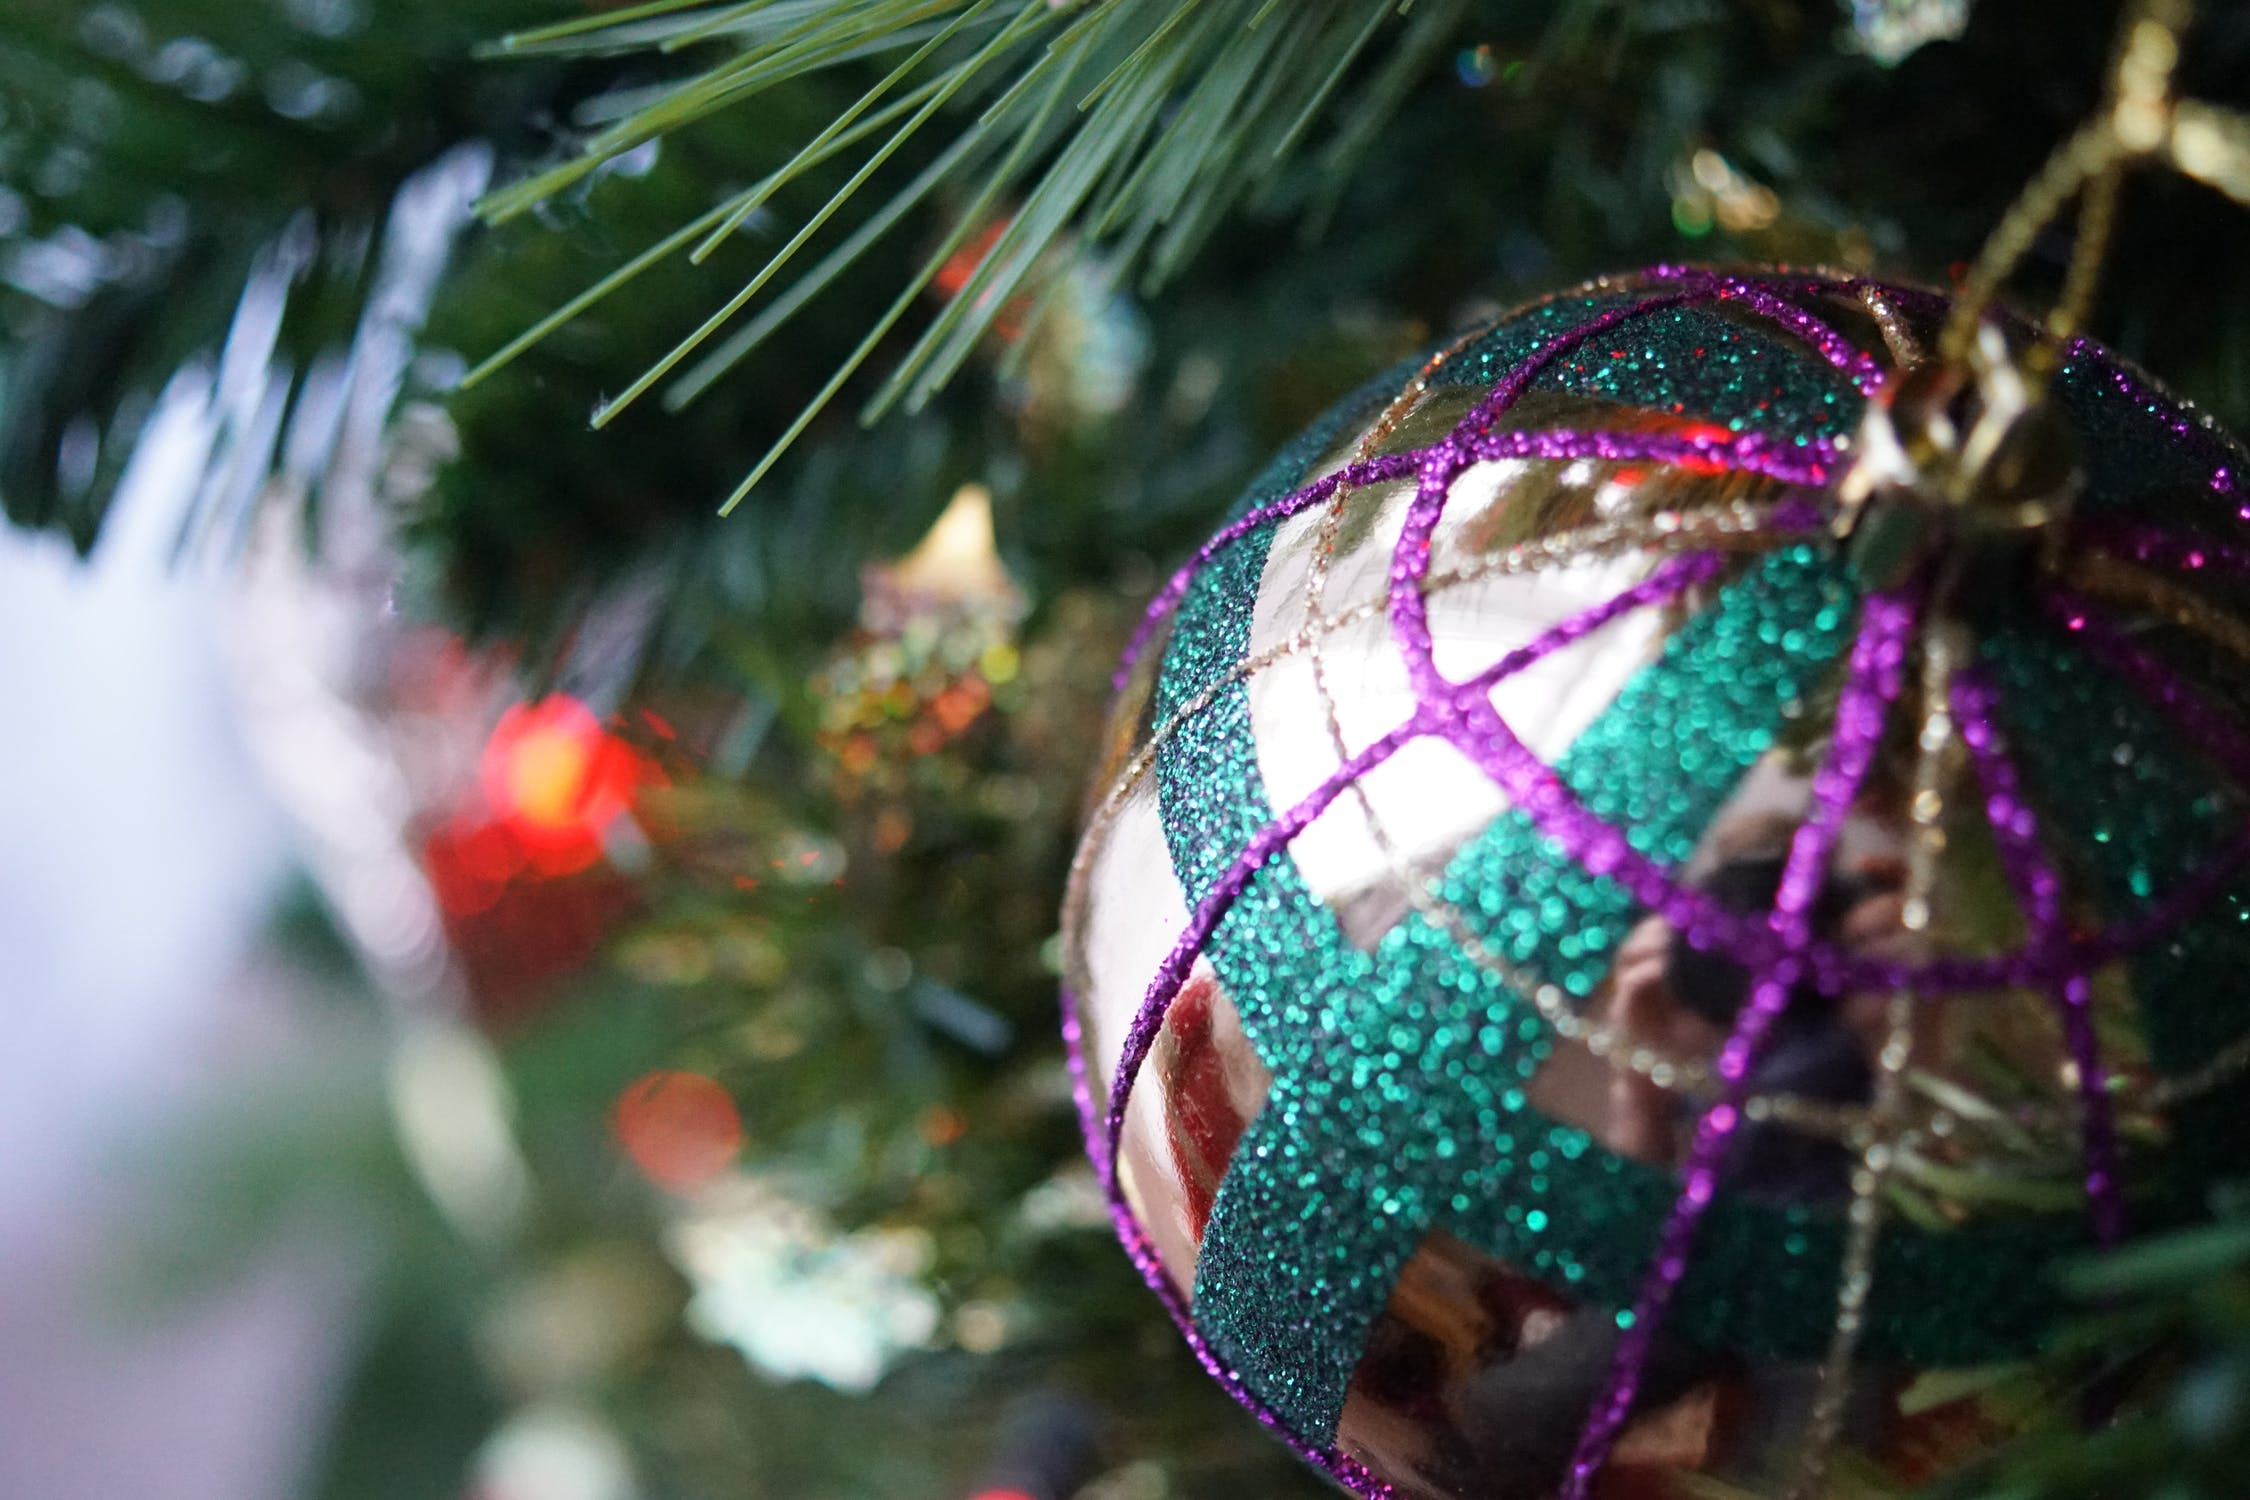 Grey and multicolored ornament on a tree